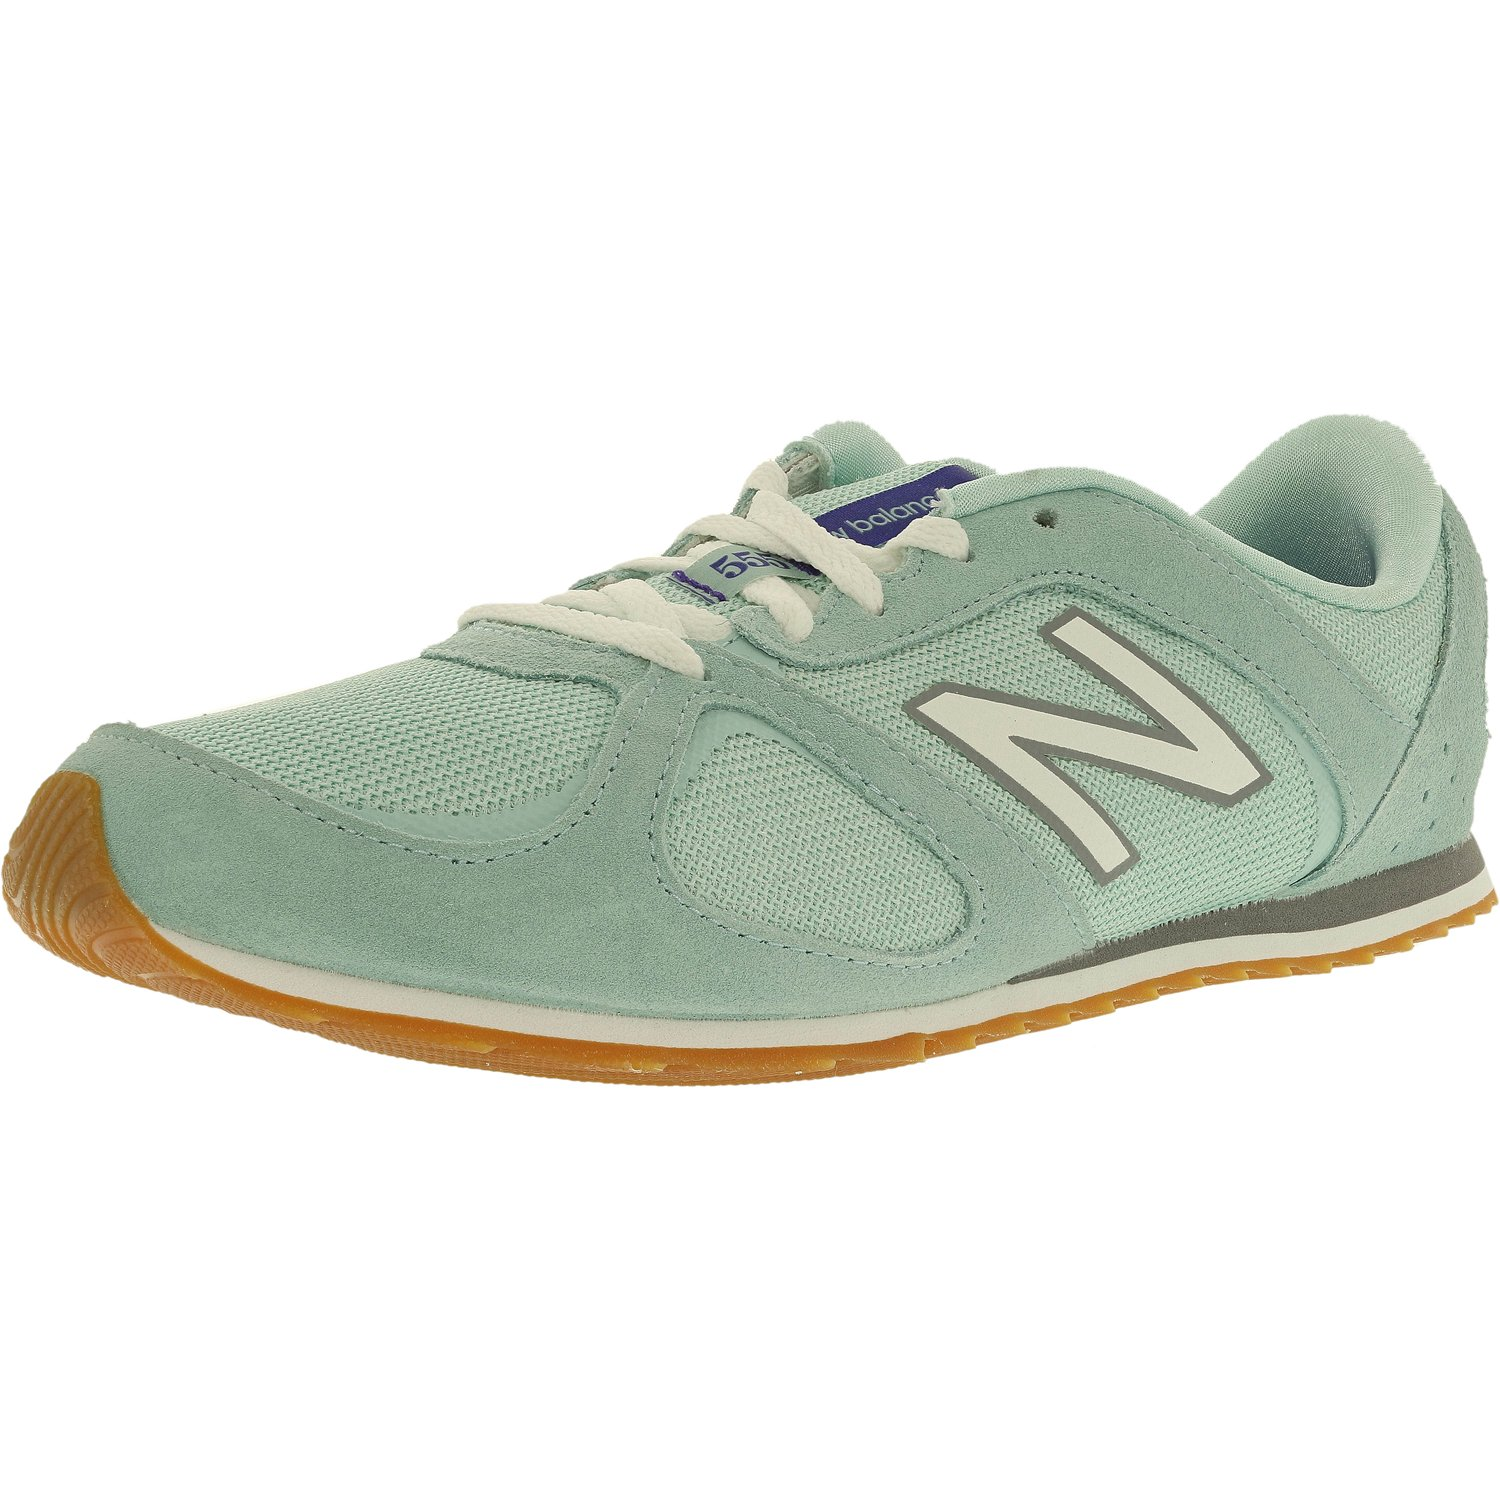 New Balance Women's Wl555 Dd Ankle-High Fabric Cross Trai...